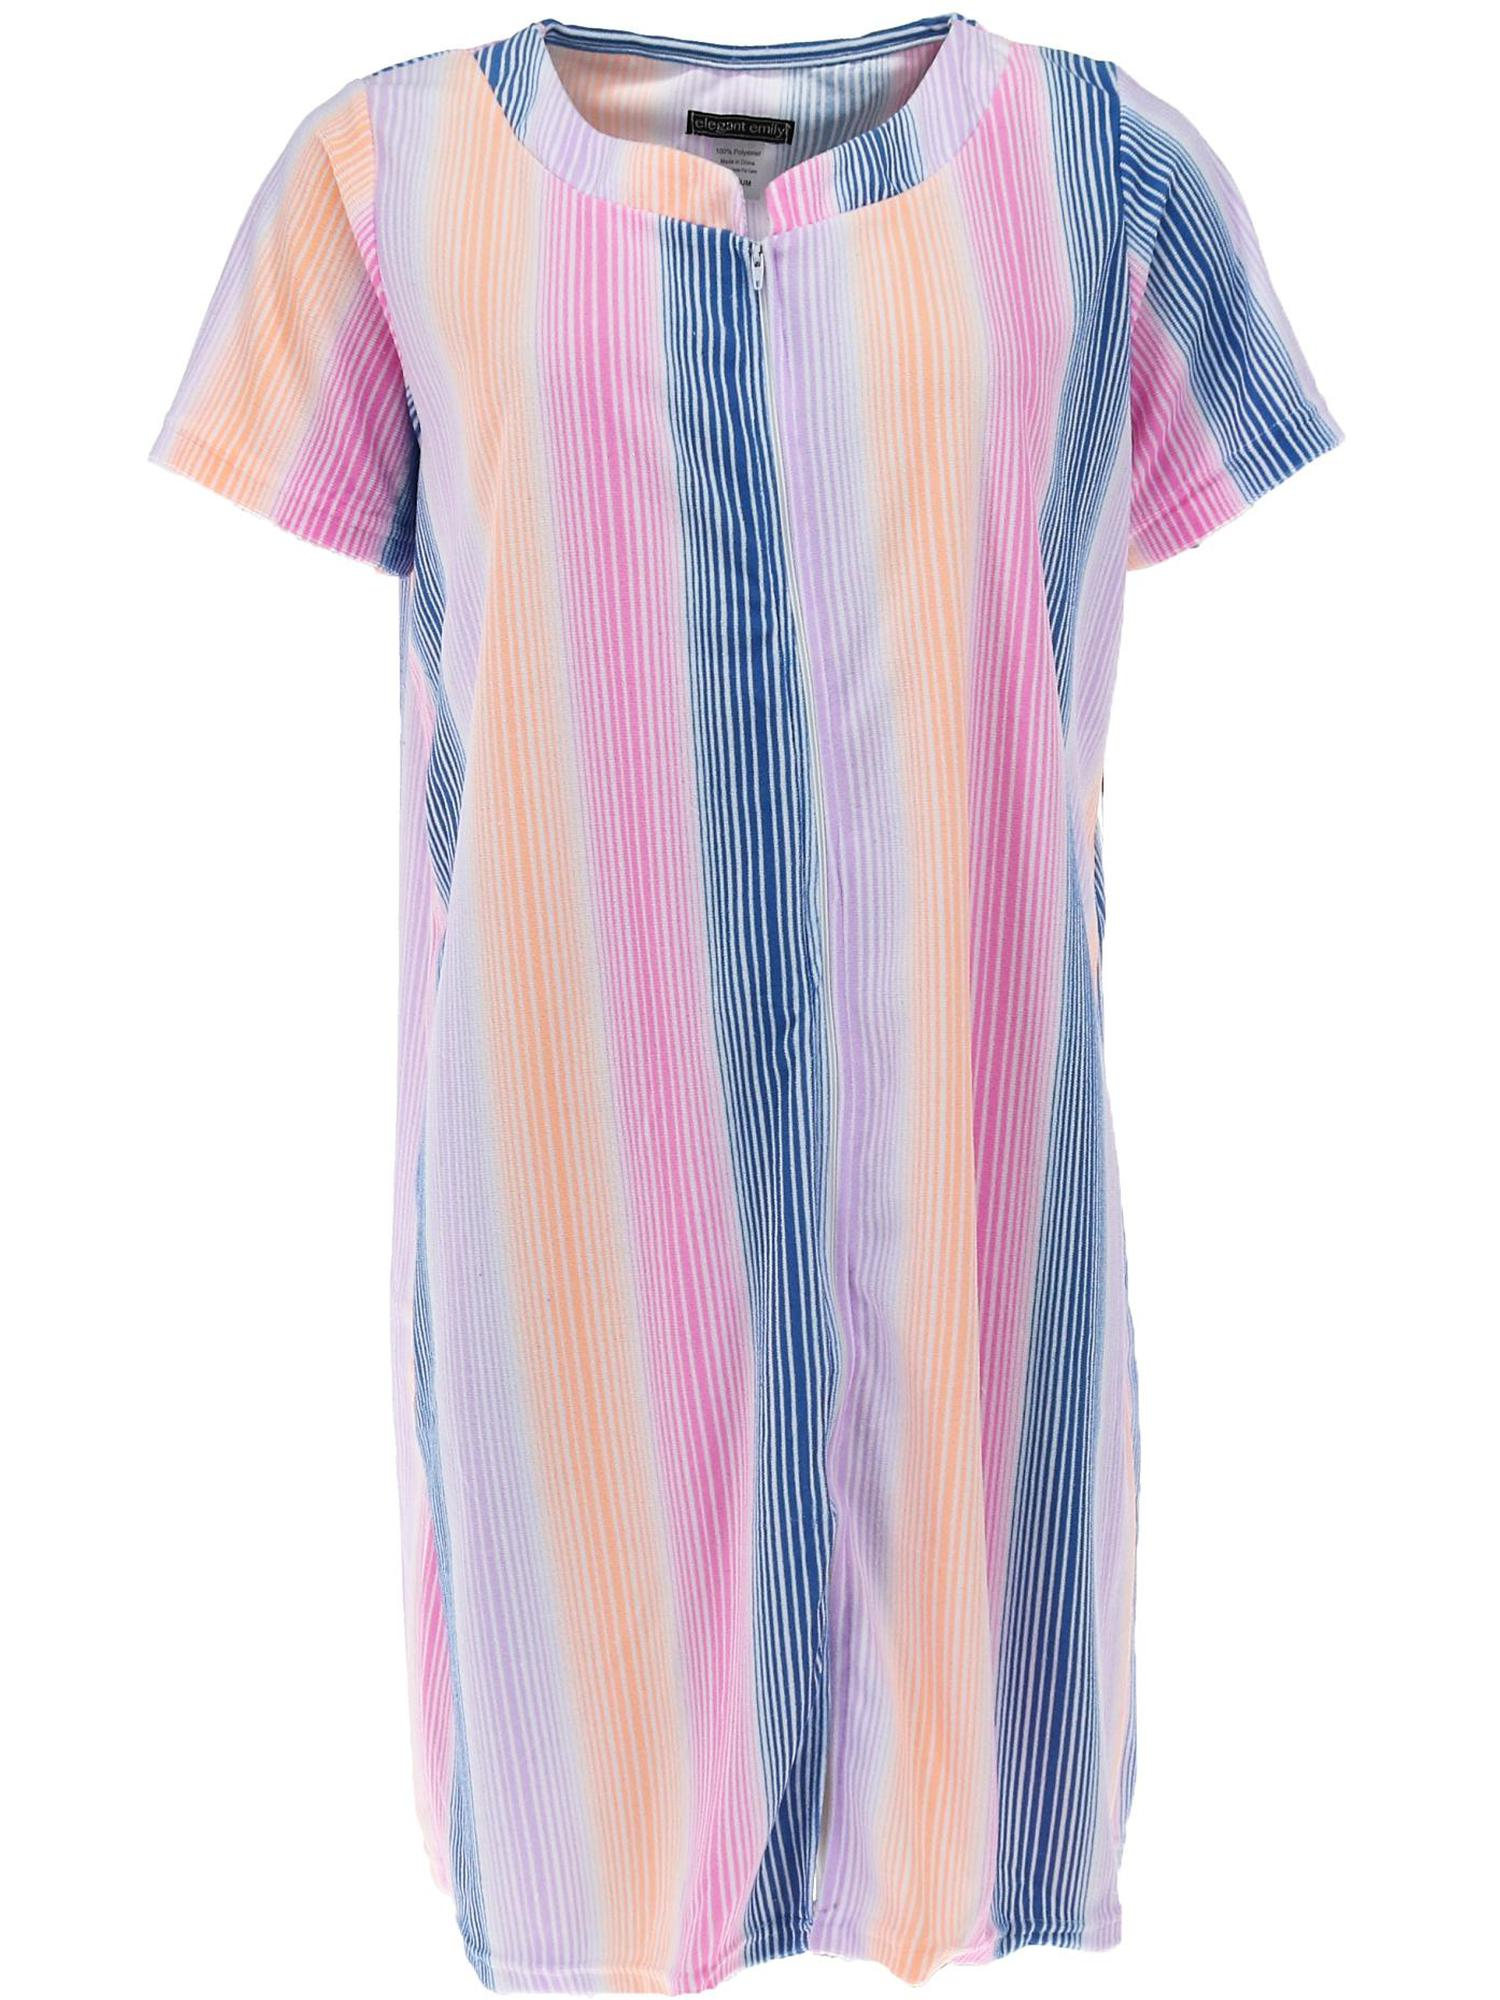 Full Zippered Front, Elegant Emily Womens Plus Size Terrycloth Cover-Up Dress with Pockets